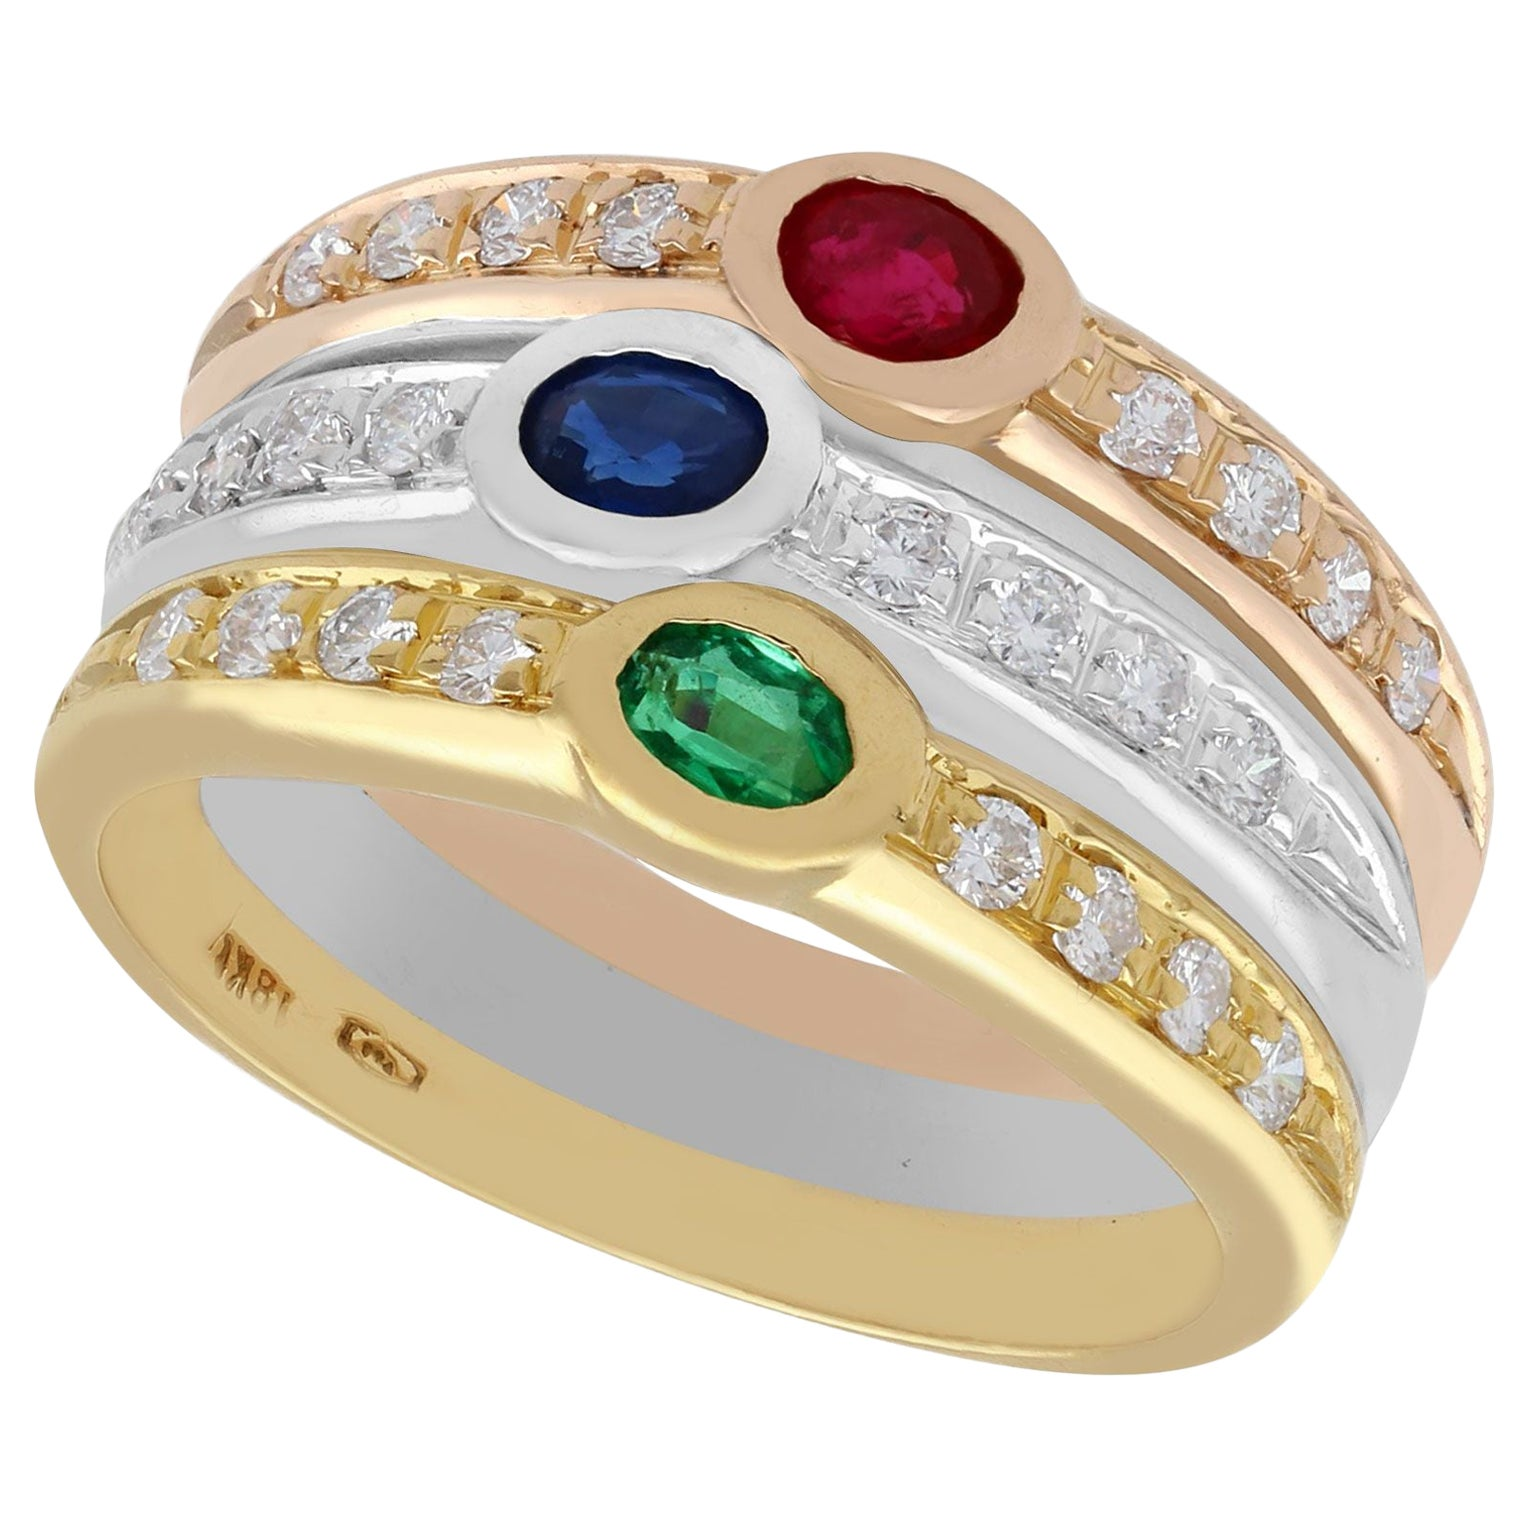 1970s Ruby Sapphire Emerald and Diamond Cocktail Ring